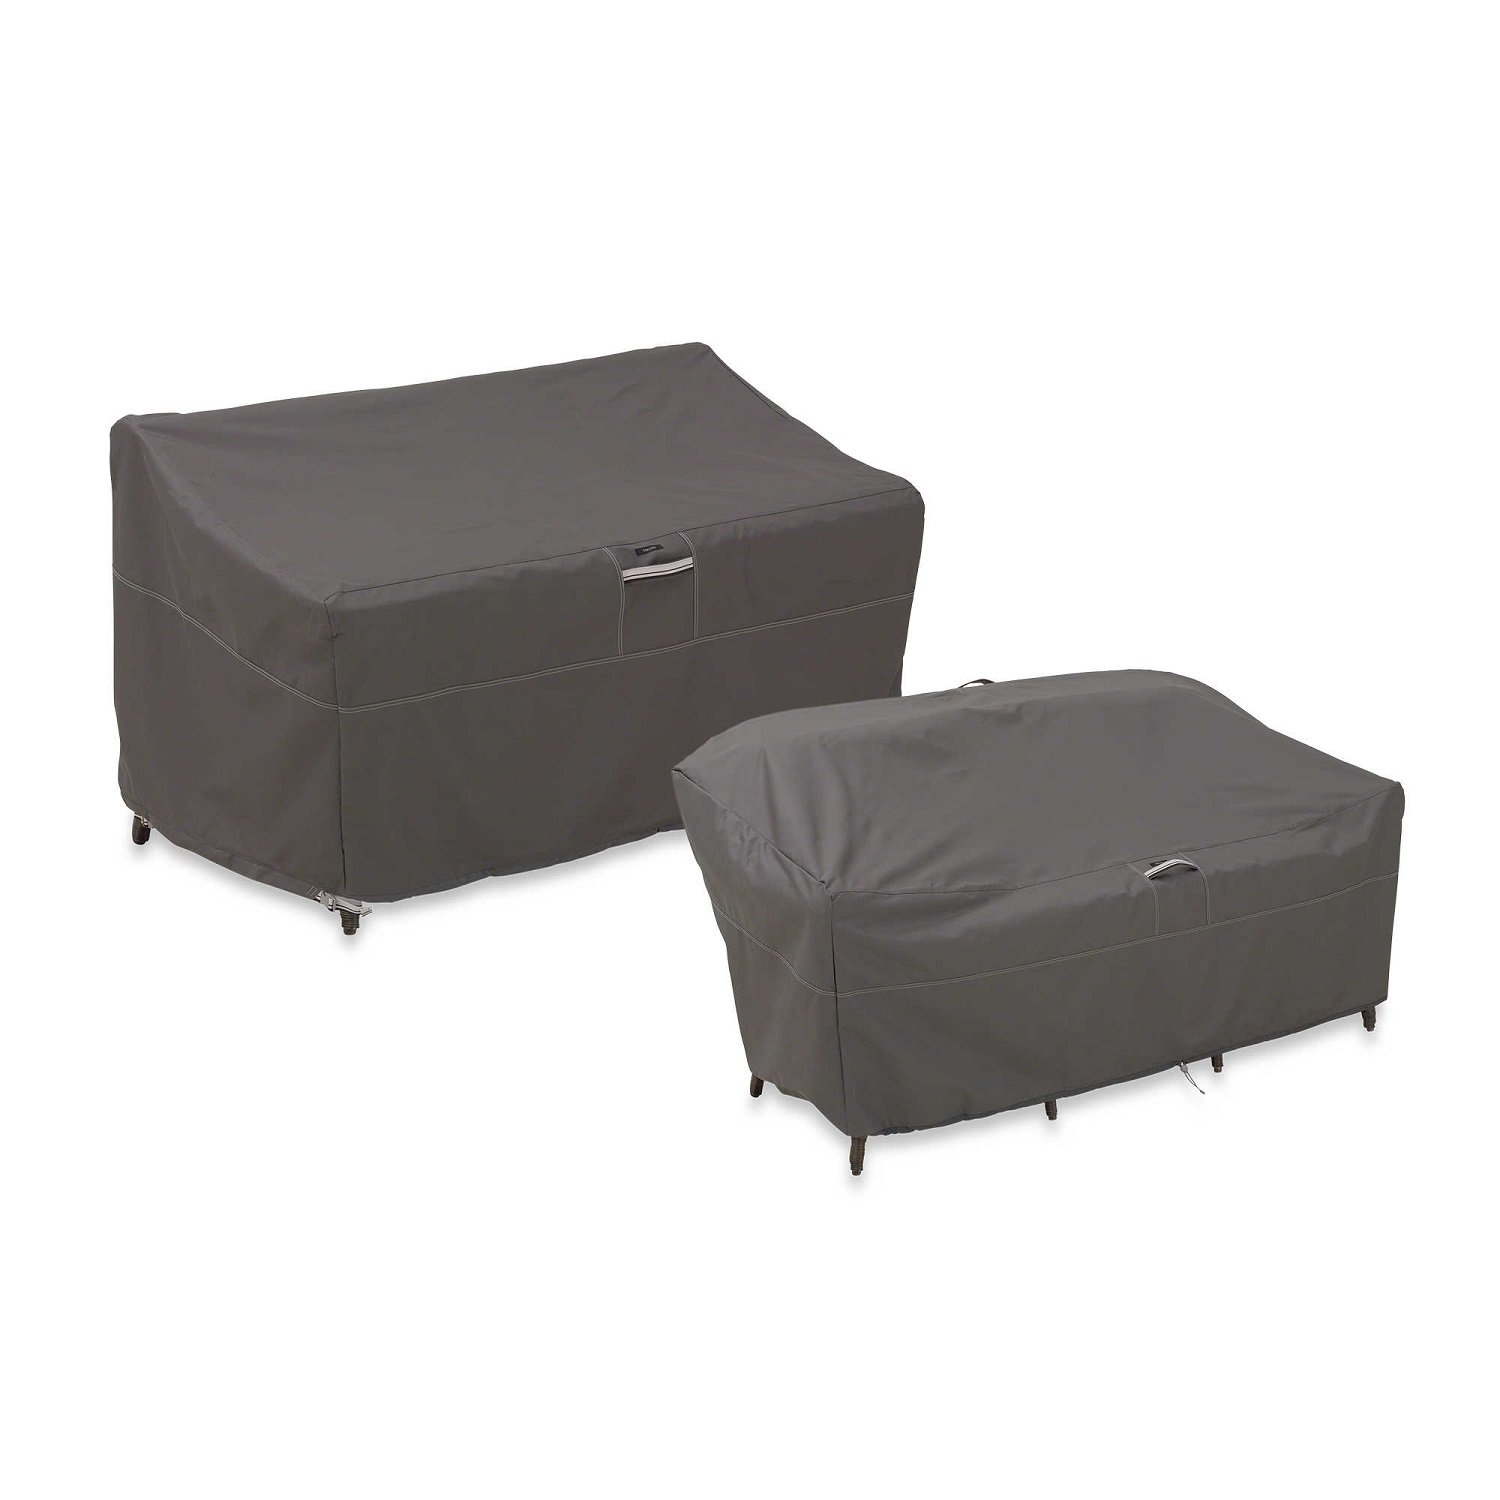 Classic Accessories 55-149-025101-00 Loveseat Cover